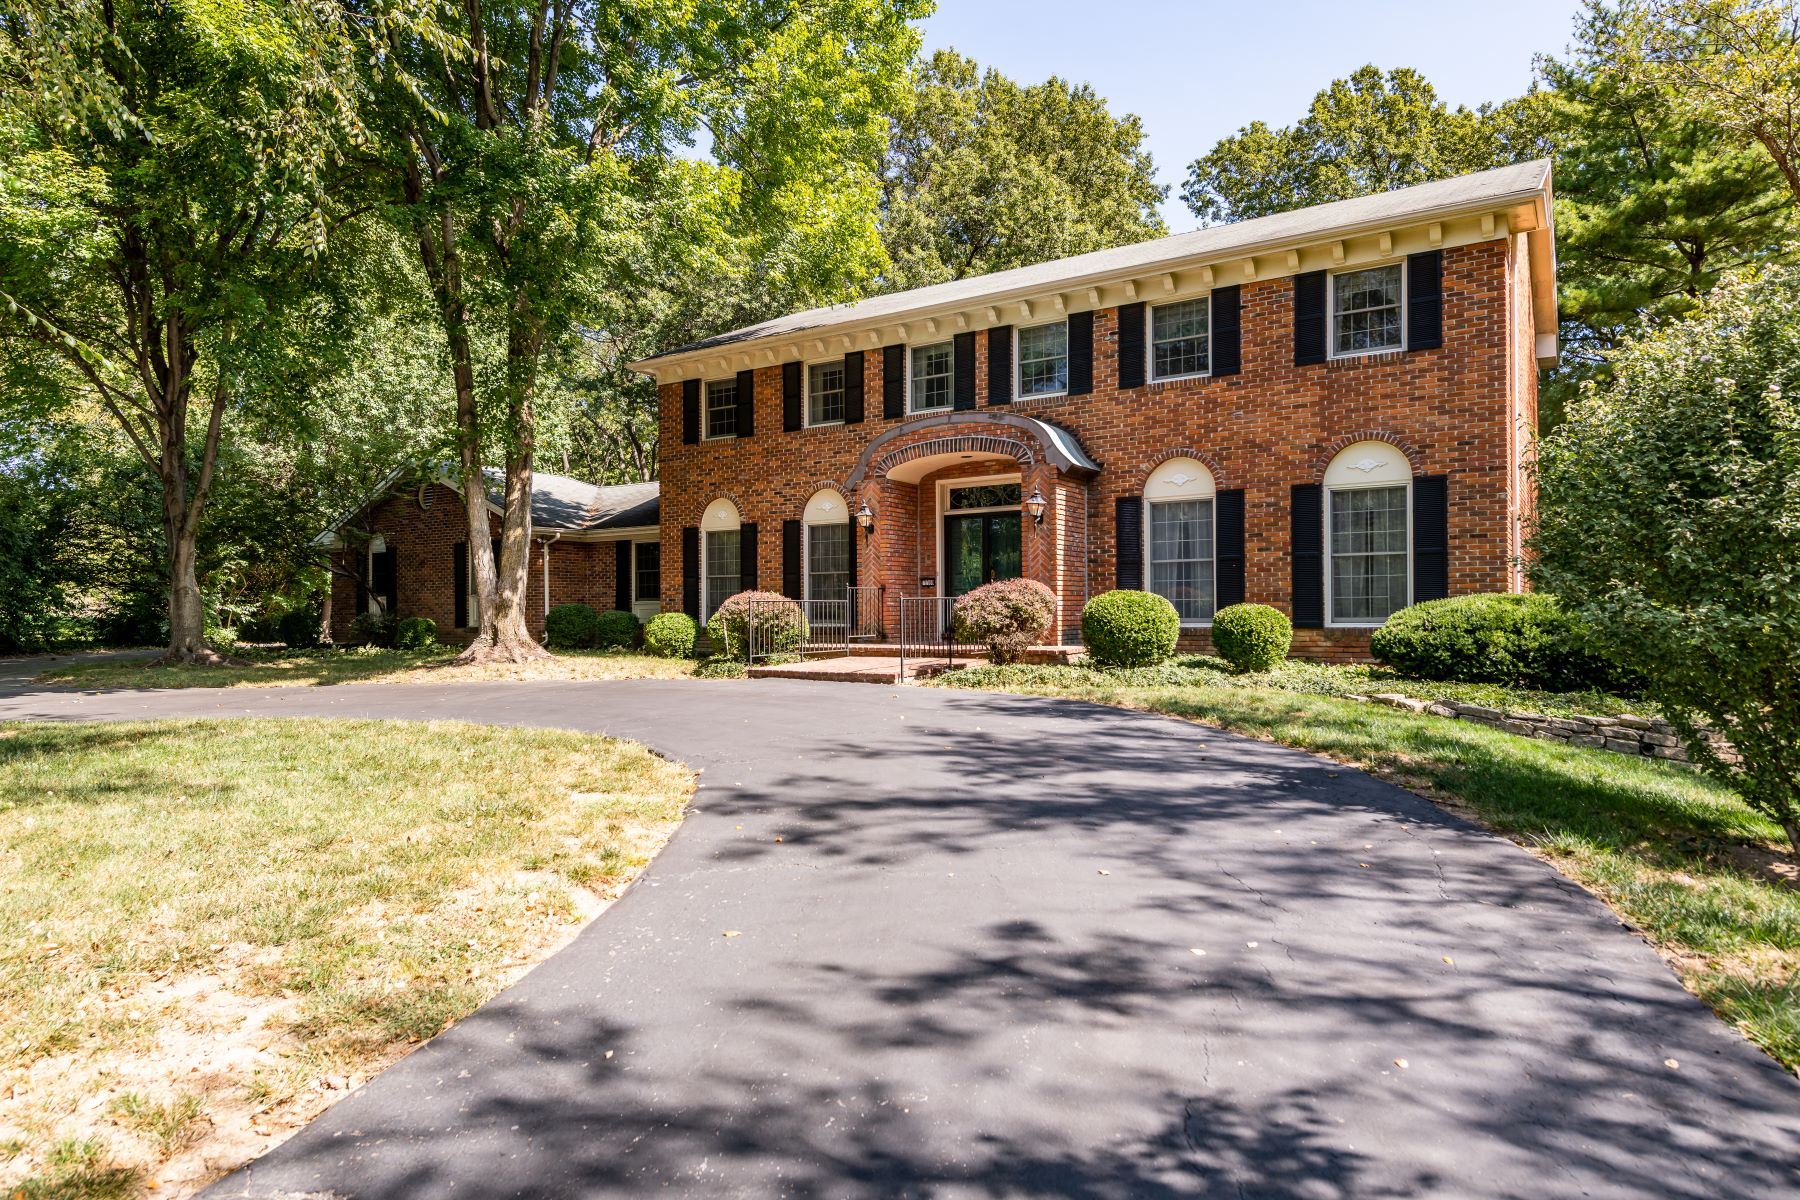 Single Family Homes for Sale at Two-Story Frontenac Home In Ladue School District 1108 Conwyck Lane Frontenac, Missouri 63131 United States